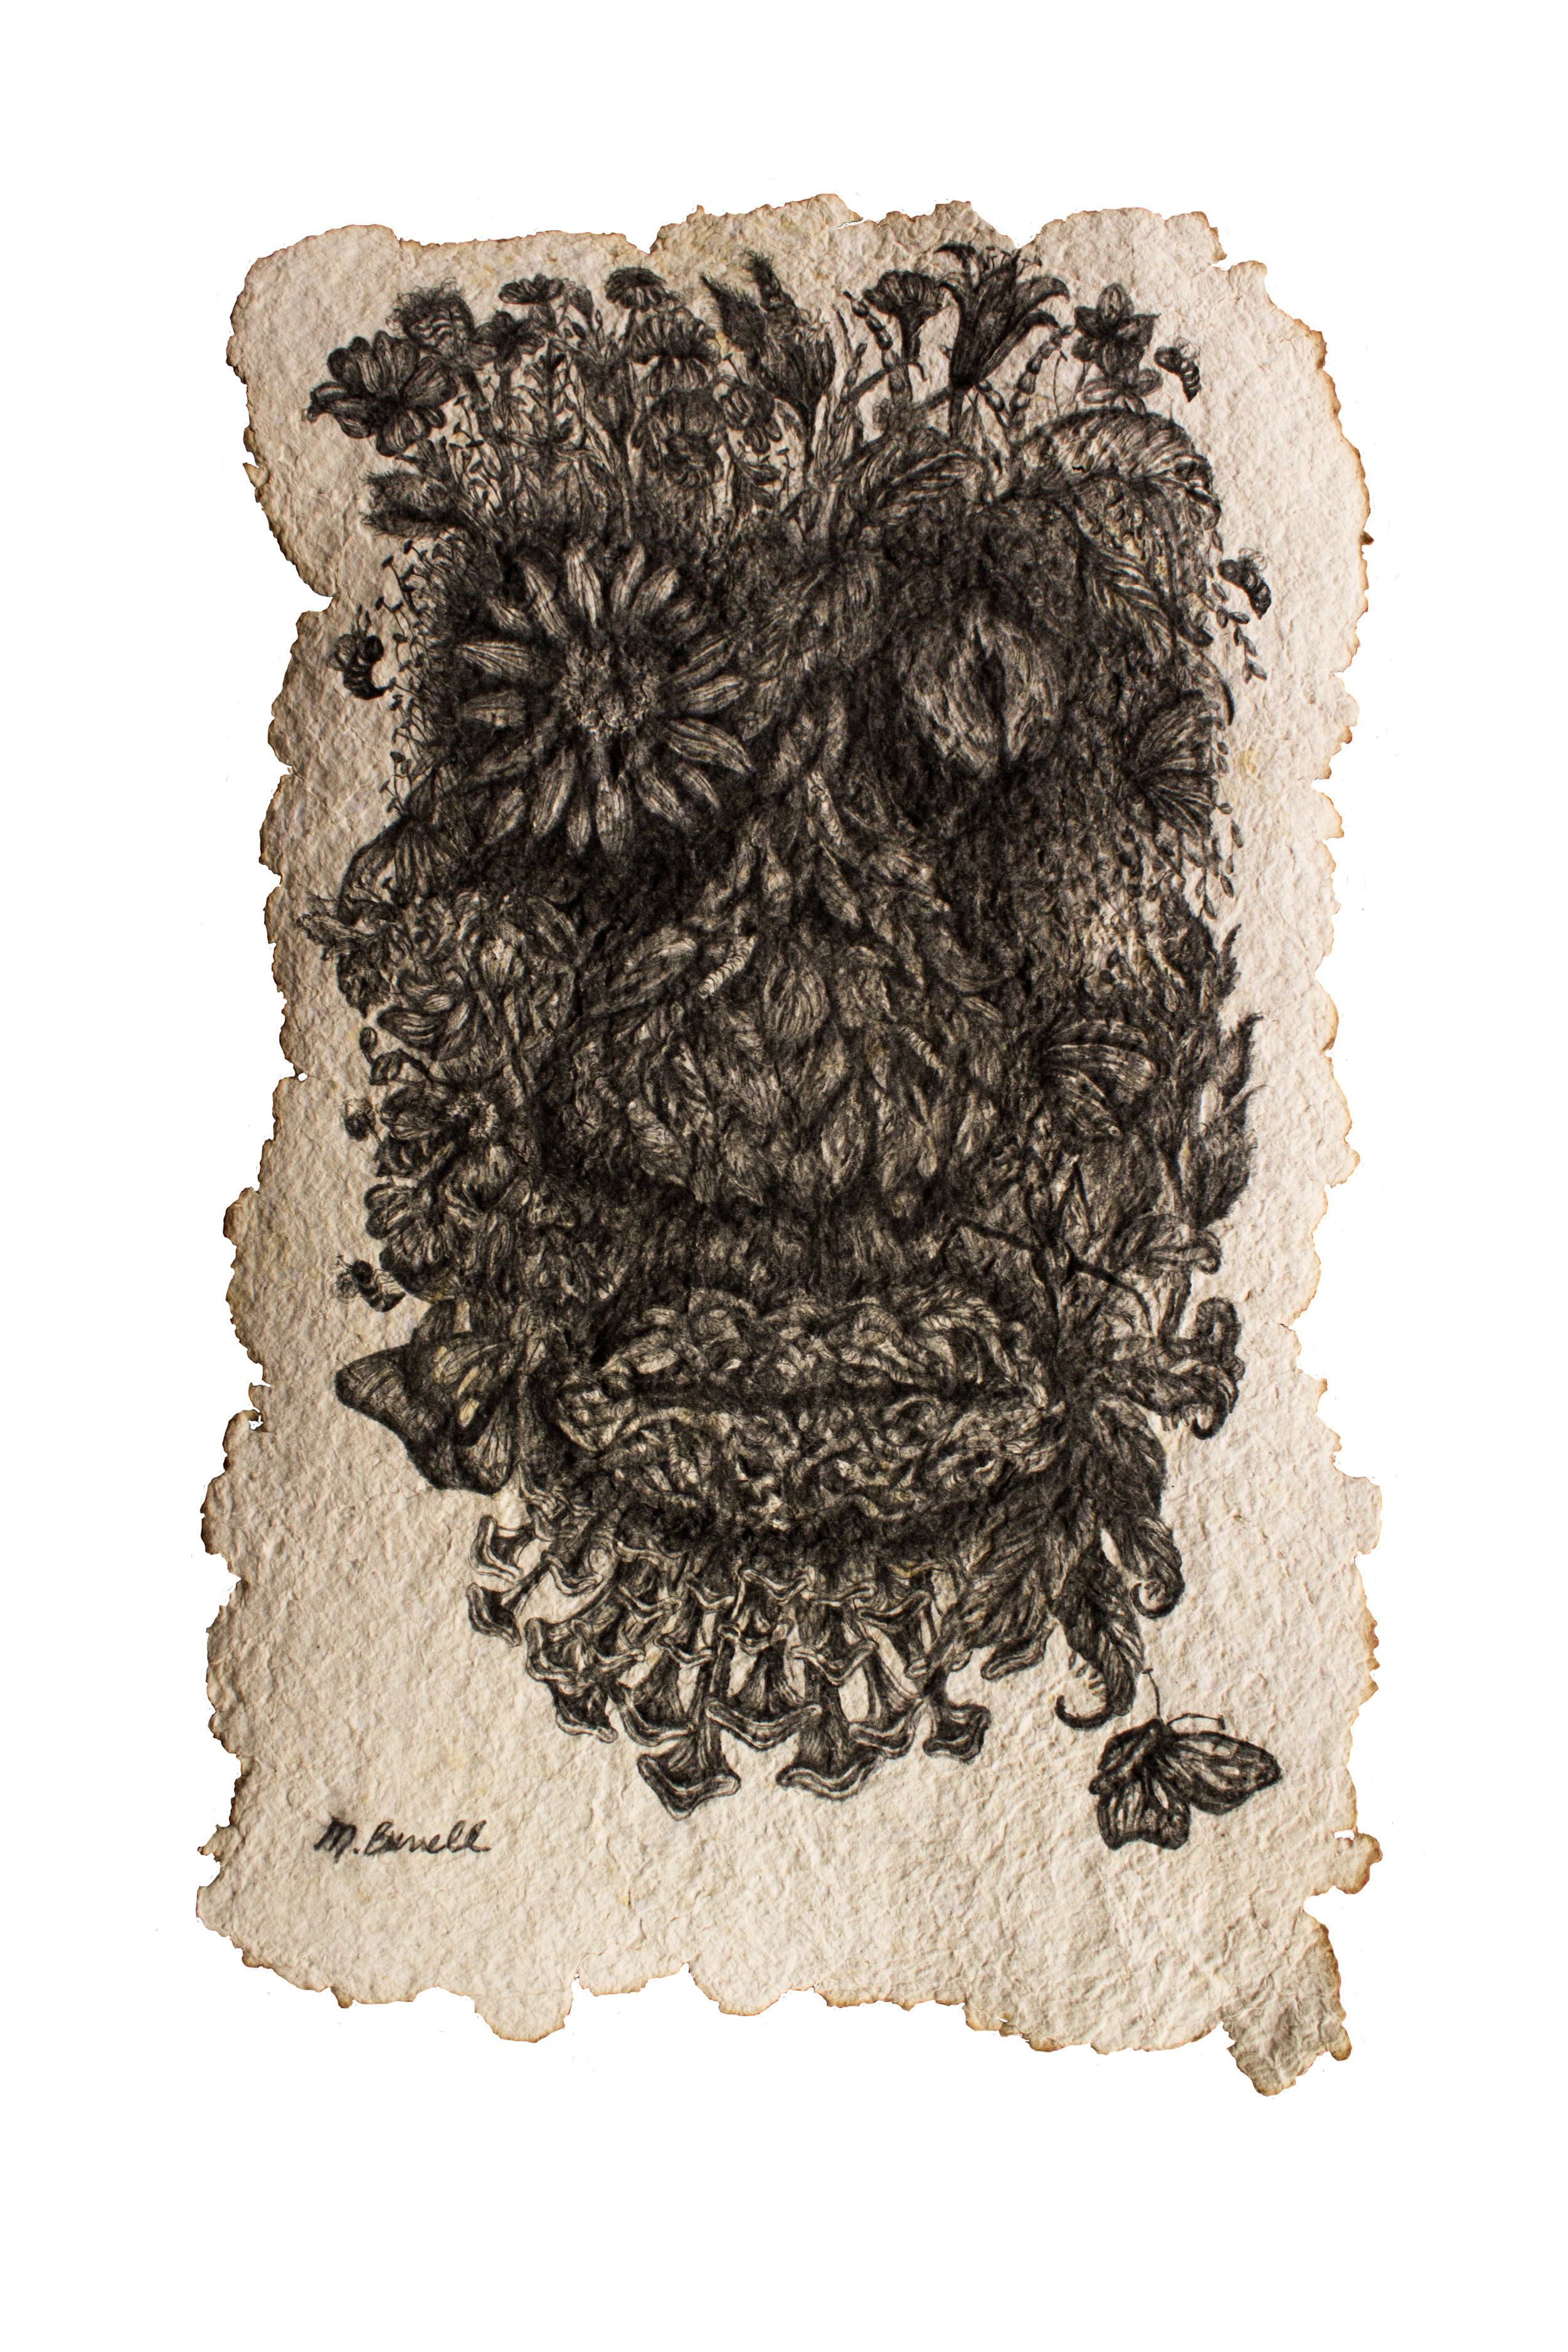 """Media: Graphite, hand-made paper  Size: 14"""" x 21""""  Completed in 2015, """"Evolved Connections"""" is the fifth piece in the """"Evolved Series"""". This image, like the others in this series depict a human face, that has been composed using textures and plant, and insect life. When making this drawing, I was thinking about our human connections to life, and how every part of our being has been made possible through our environments. I then began to question the human existence and what would our remains, or the shrines placed only for human consumption, would look after being left to nature's devices."""